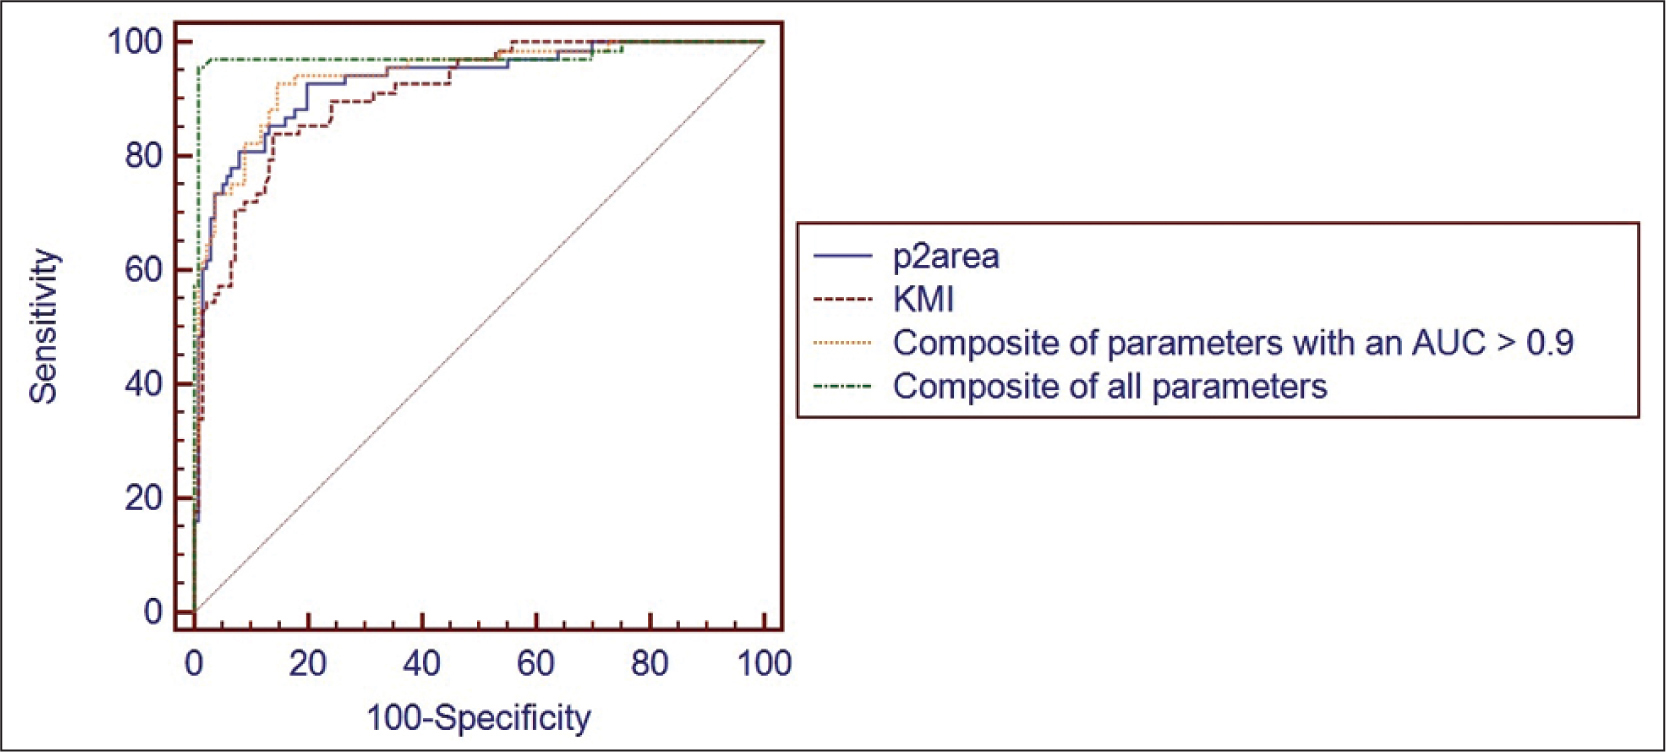 Receiver operating characteristic (ROC) curves for distinguishing between mildly forms of keratoconic and normal corneas. The ROC curves express the performance achieved by p2area, Keratoconus Match Index (KMI), and the composite of Ocular Response Analyzer (ORA; Reichert Ophthalmic Instruments, Depew, NY) parameters that achieved an area under the curve (AUC) greater than 0.9 when analyzed independently and the composite of all 41 ORA parameters.